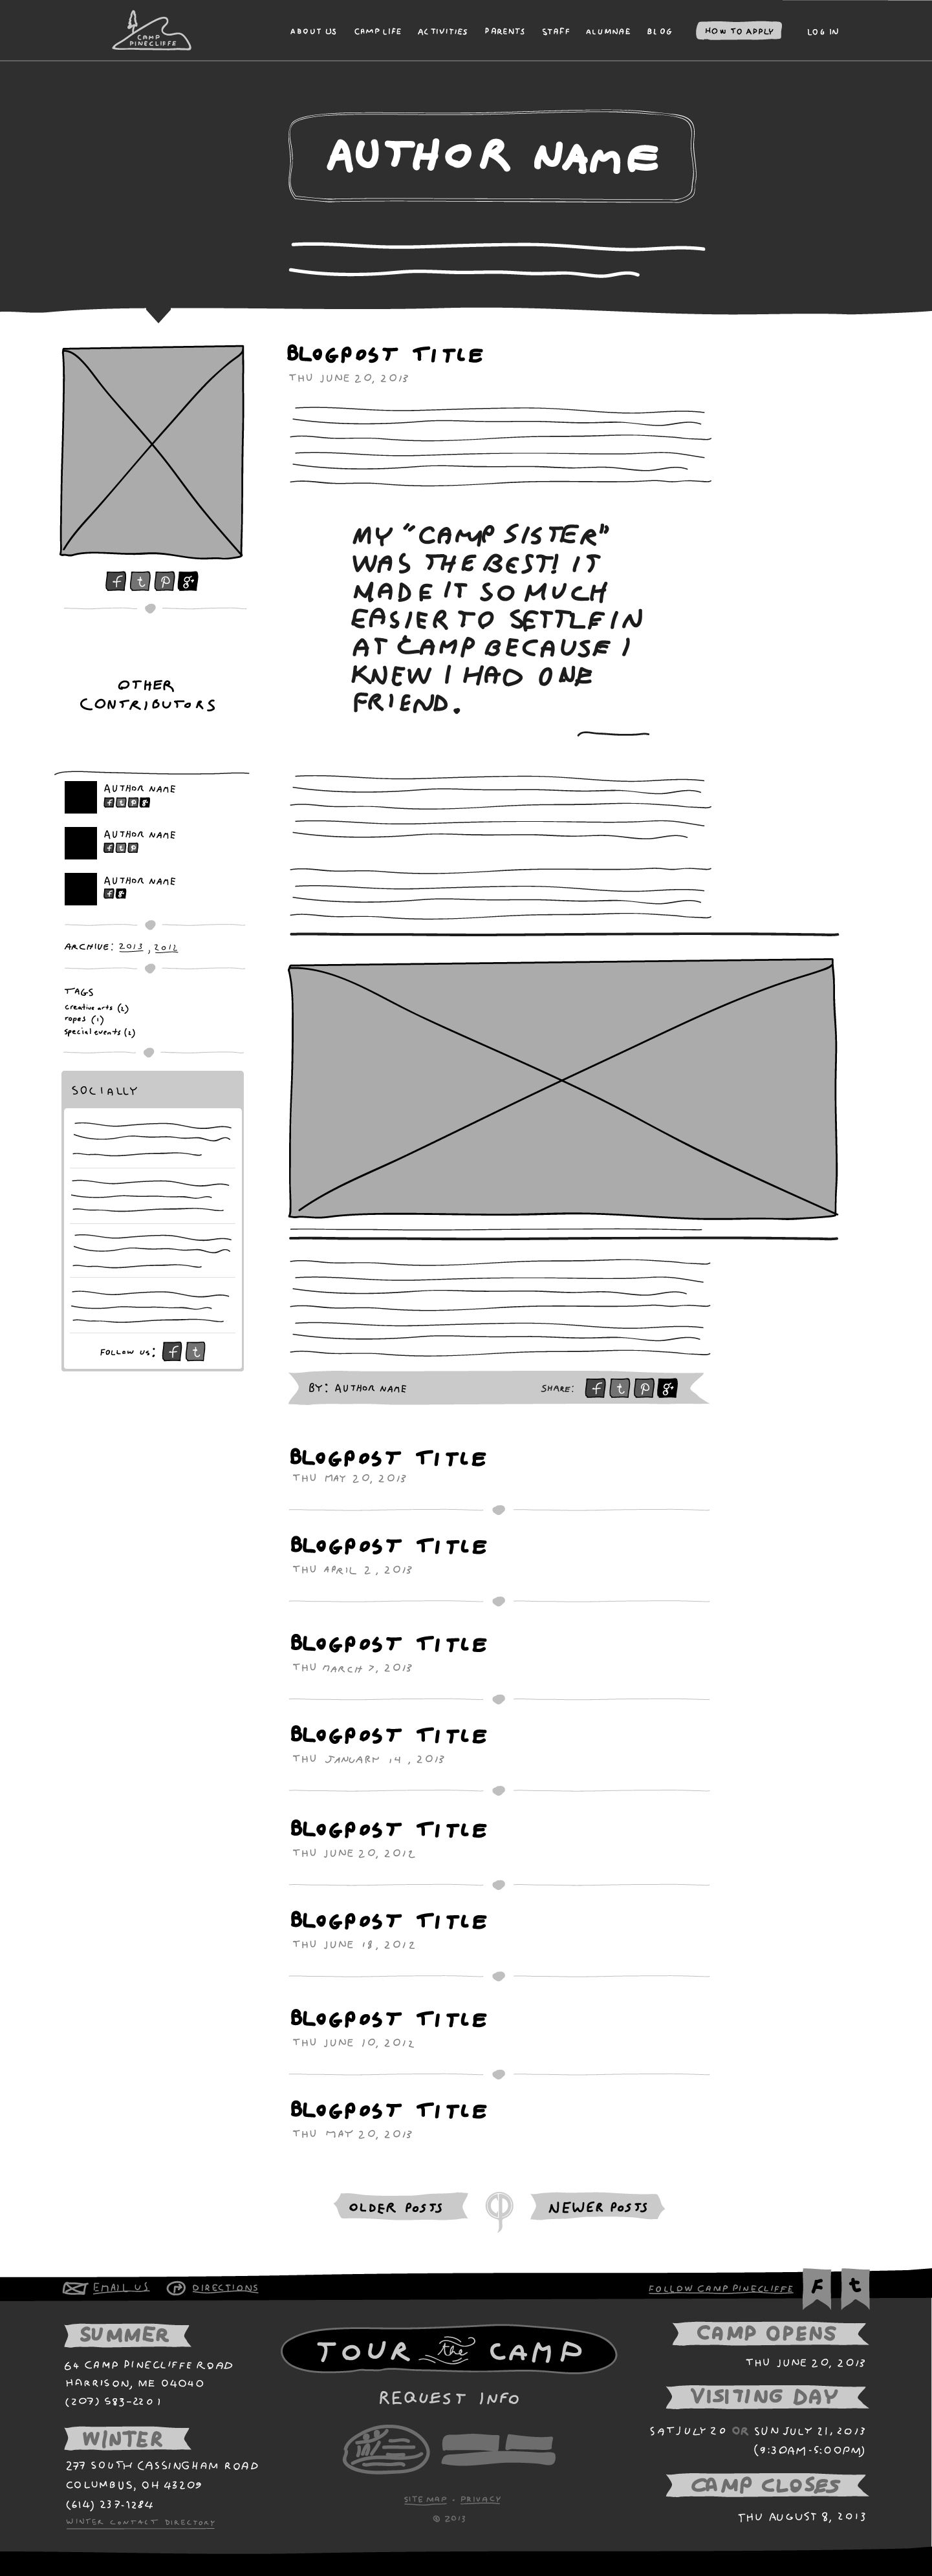 Custom Website Redesign 2 Author Page Sketch Wireframe With The